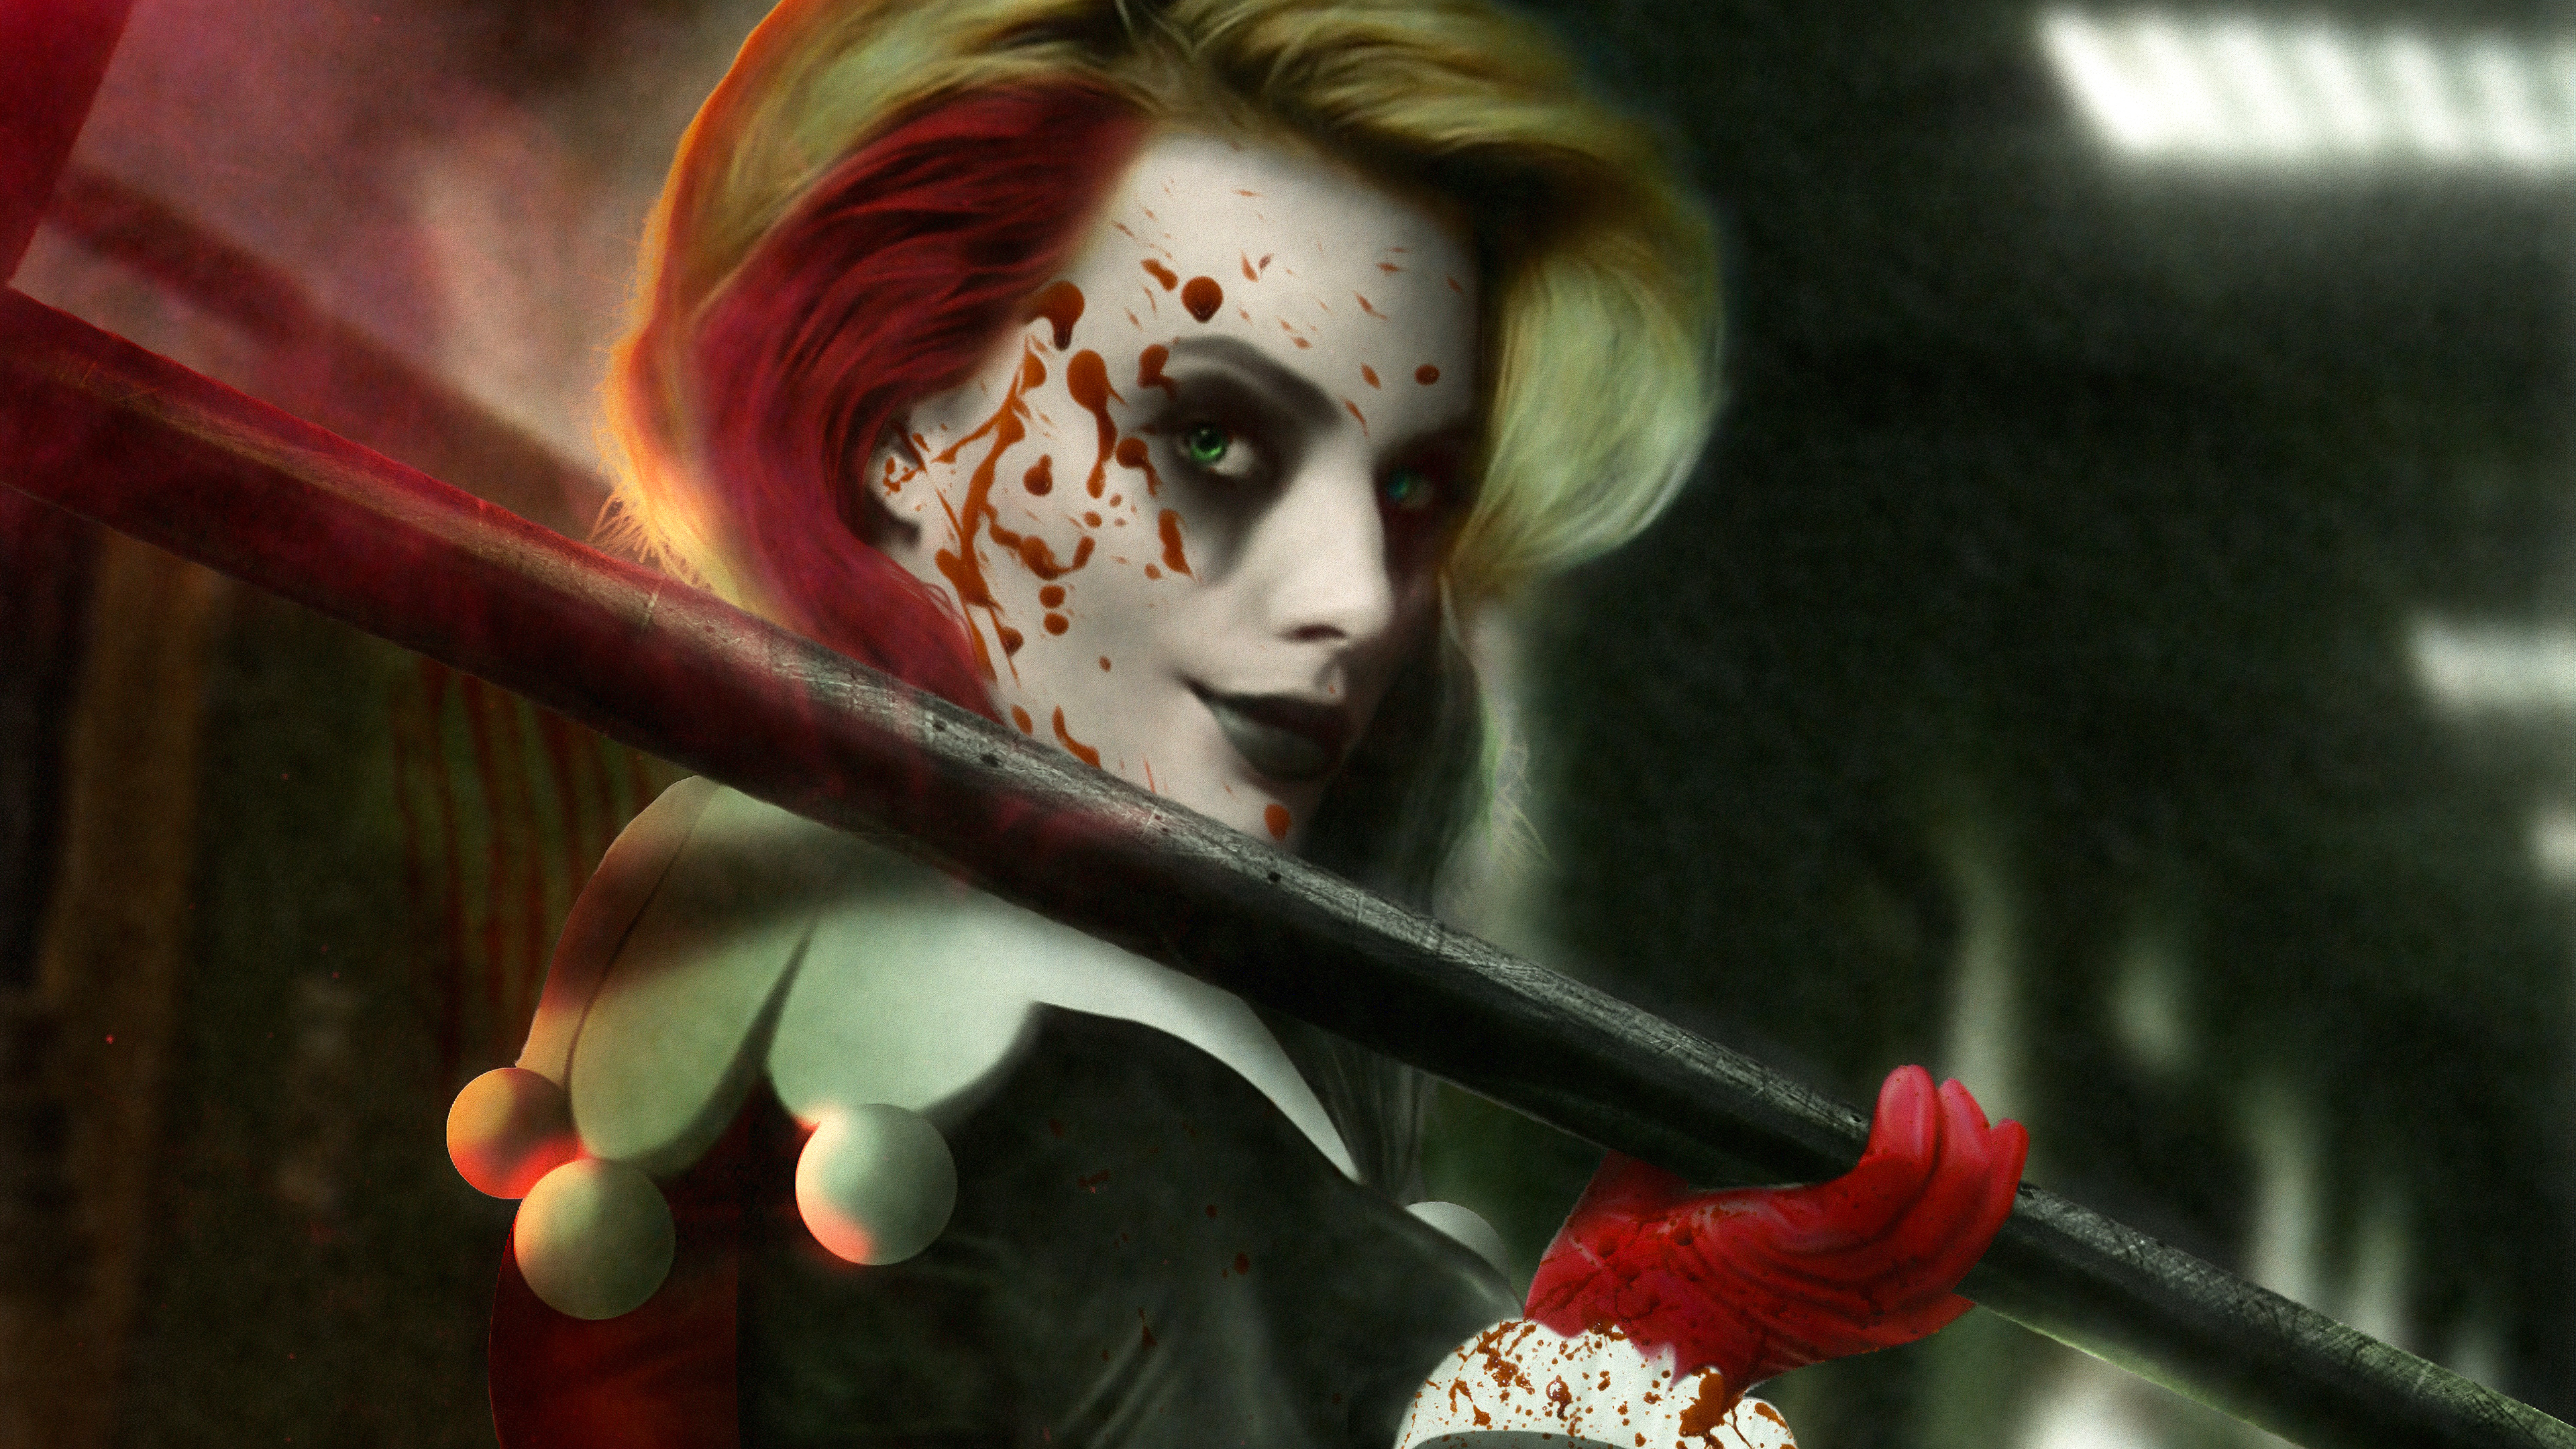 Wallpaper Harley Quinn The bkiid Queen